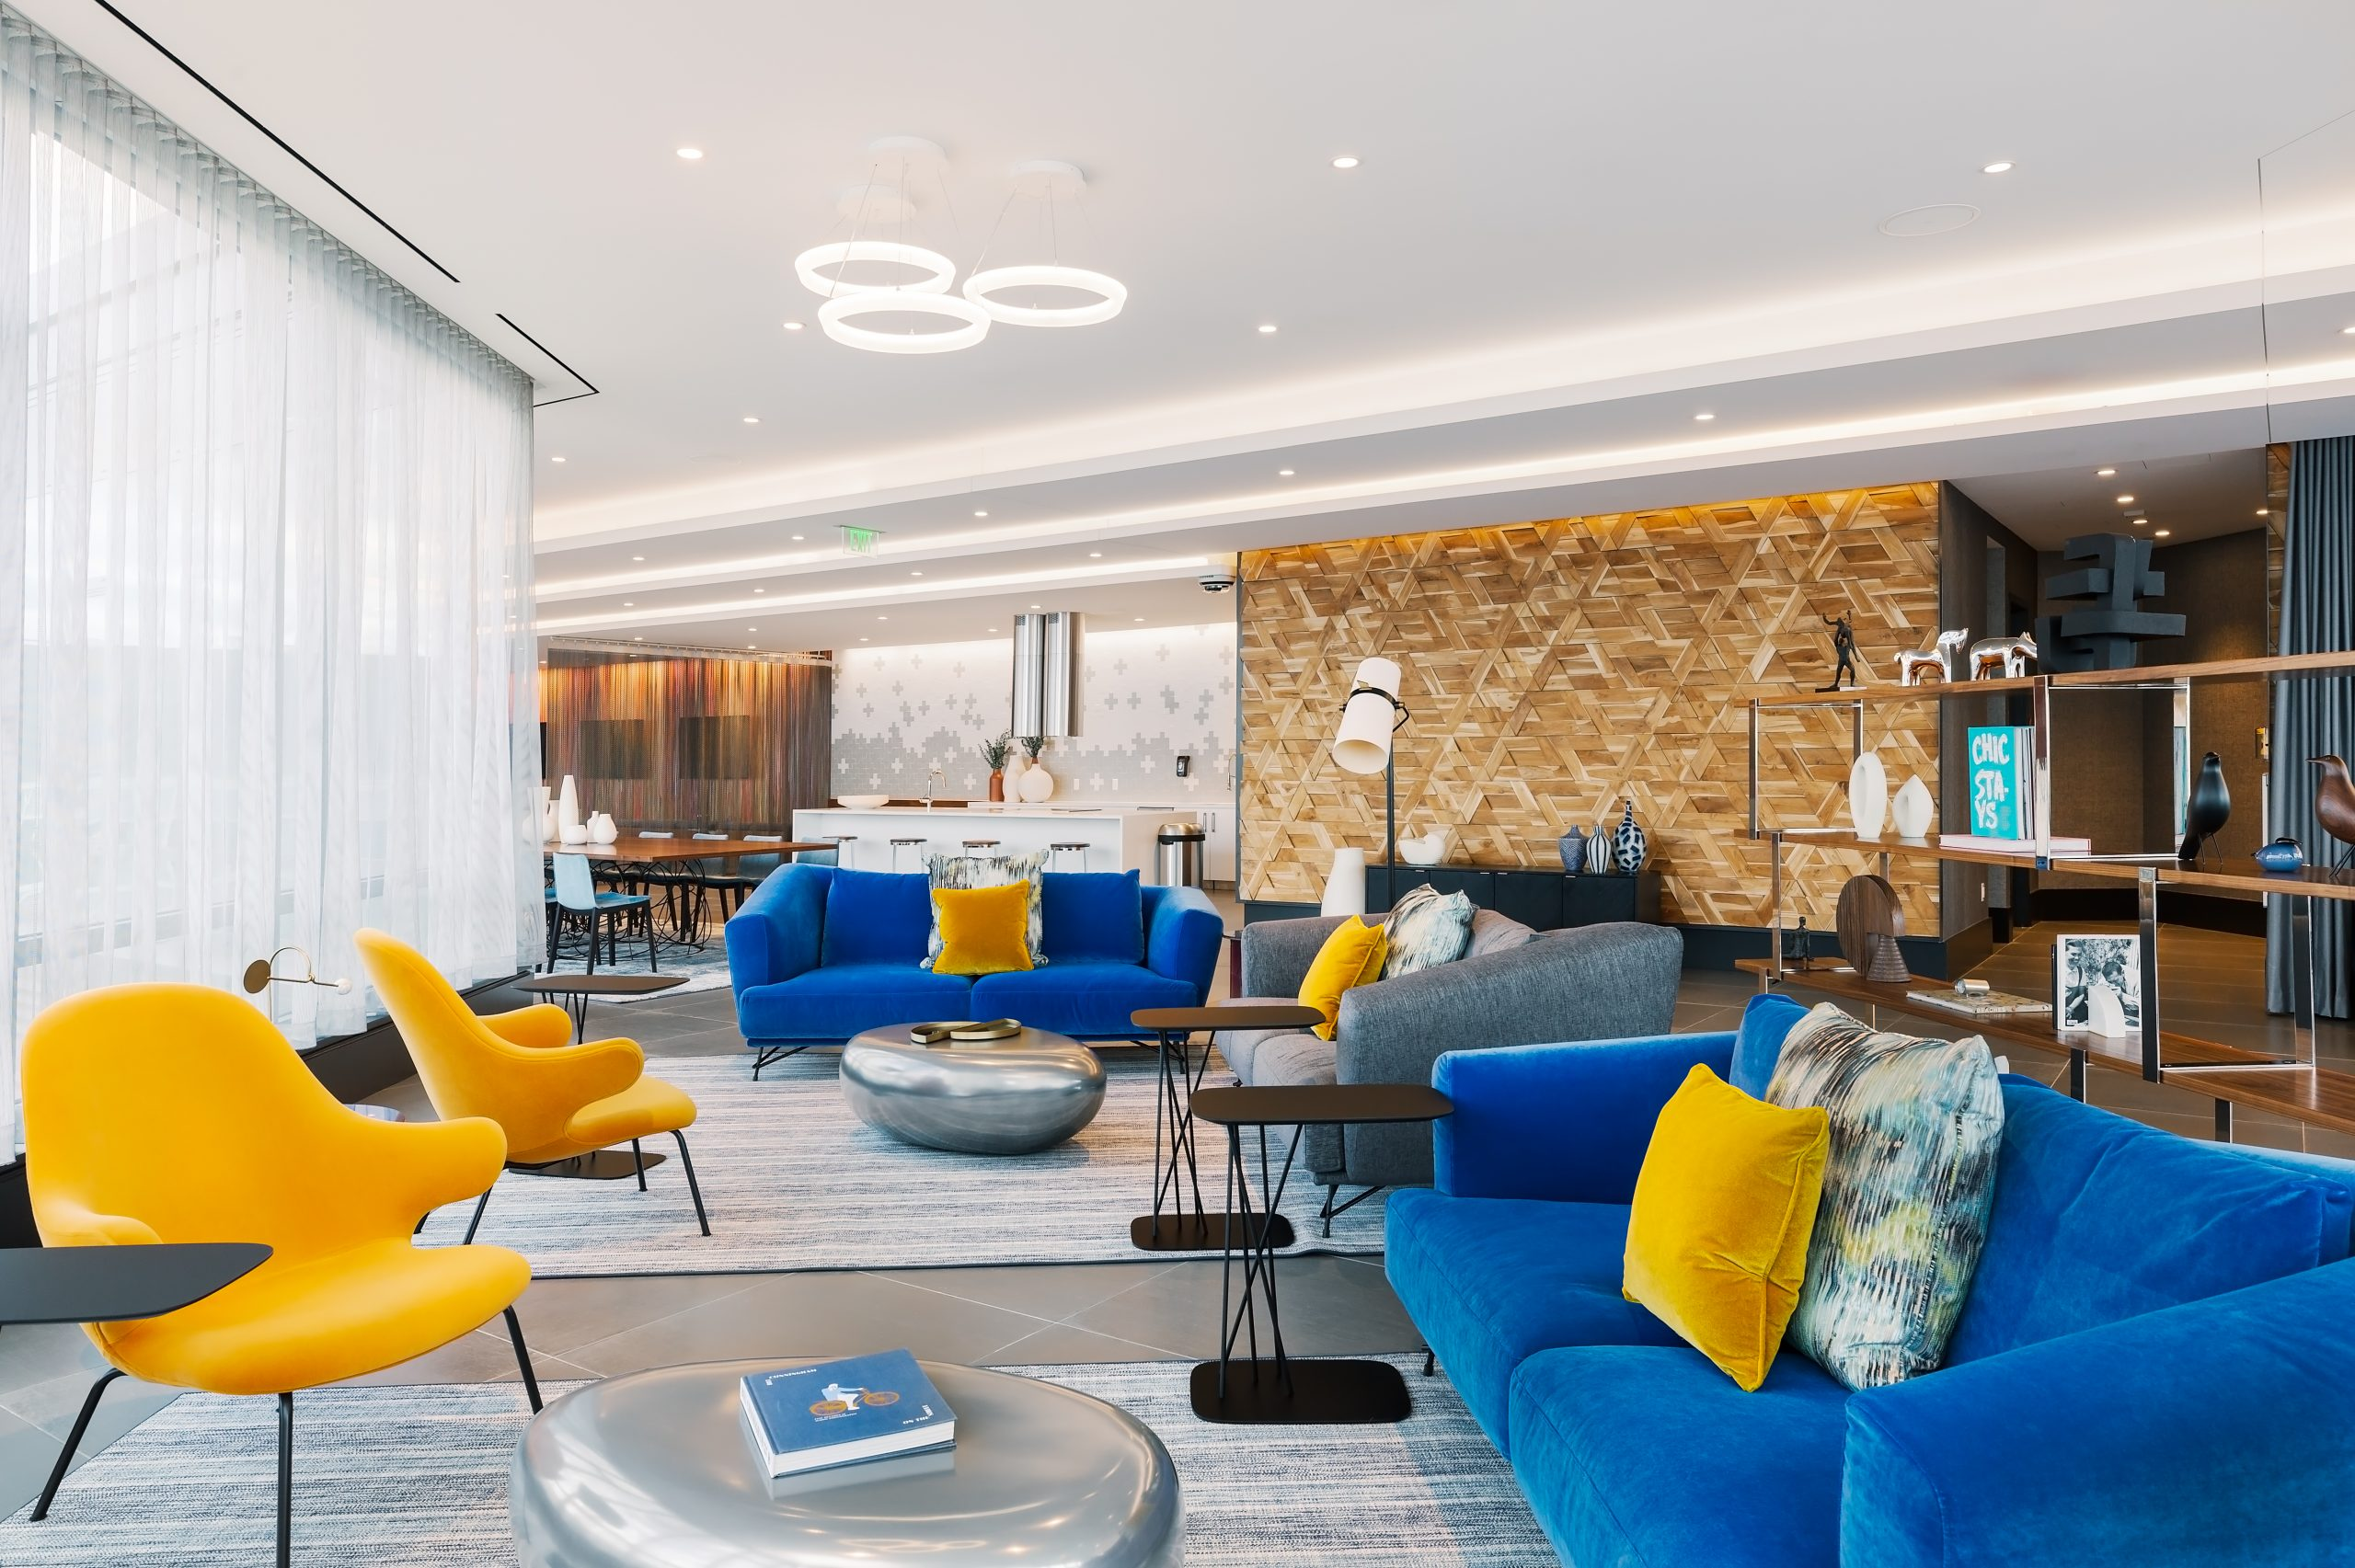 Blue and yellow themed common sitting area with couches and chairs